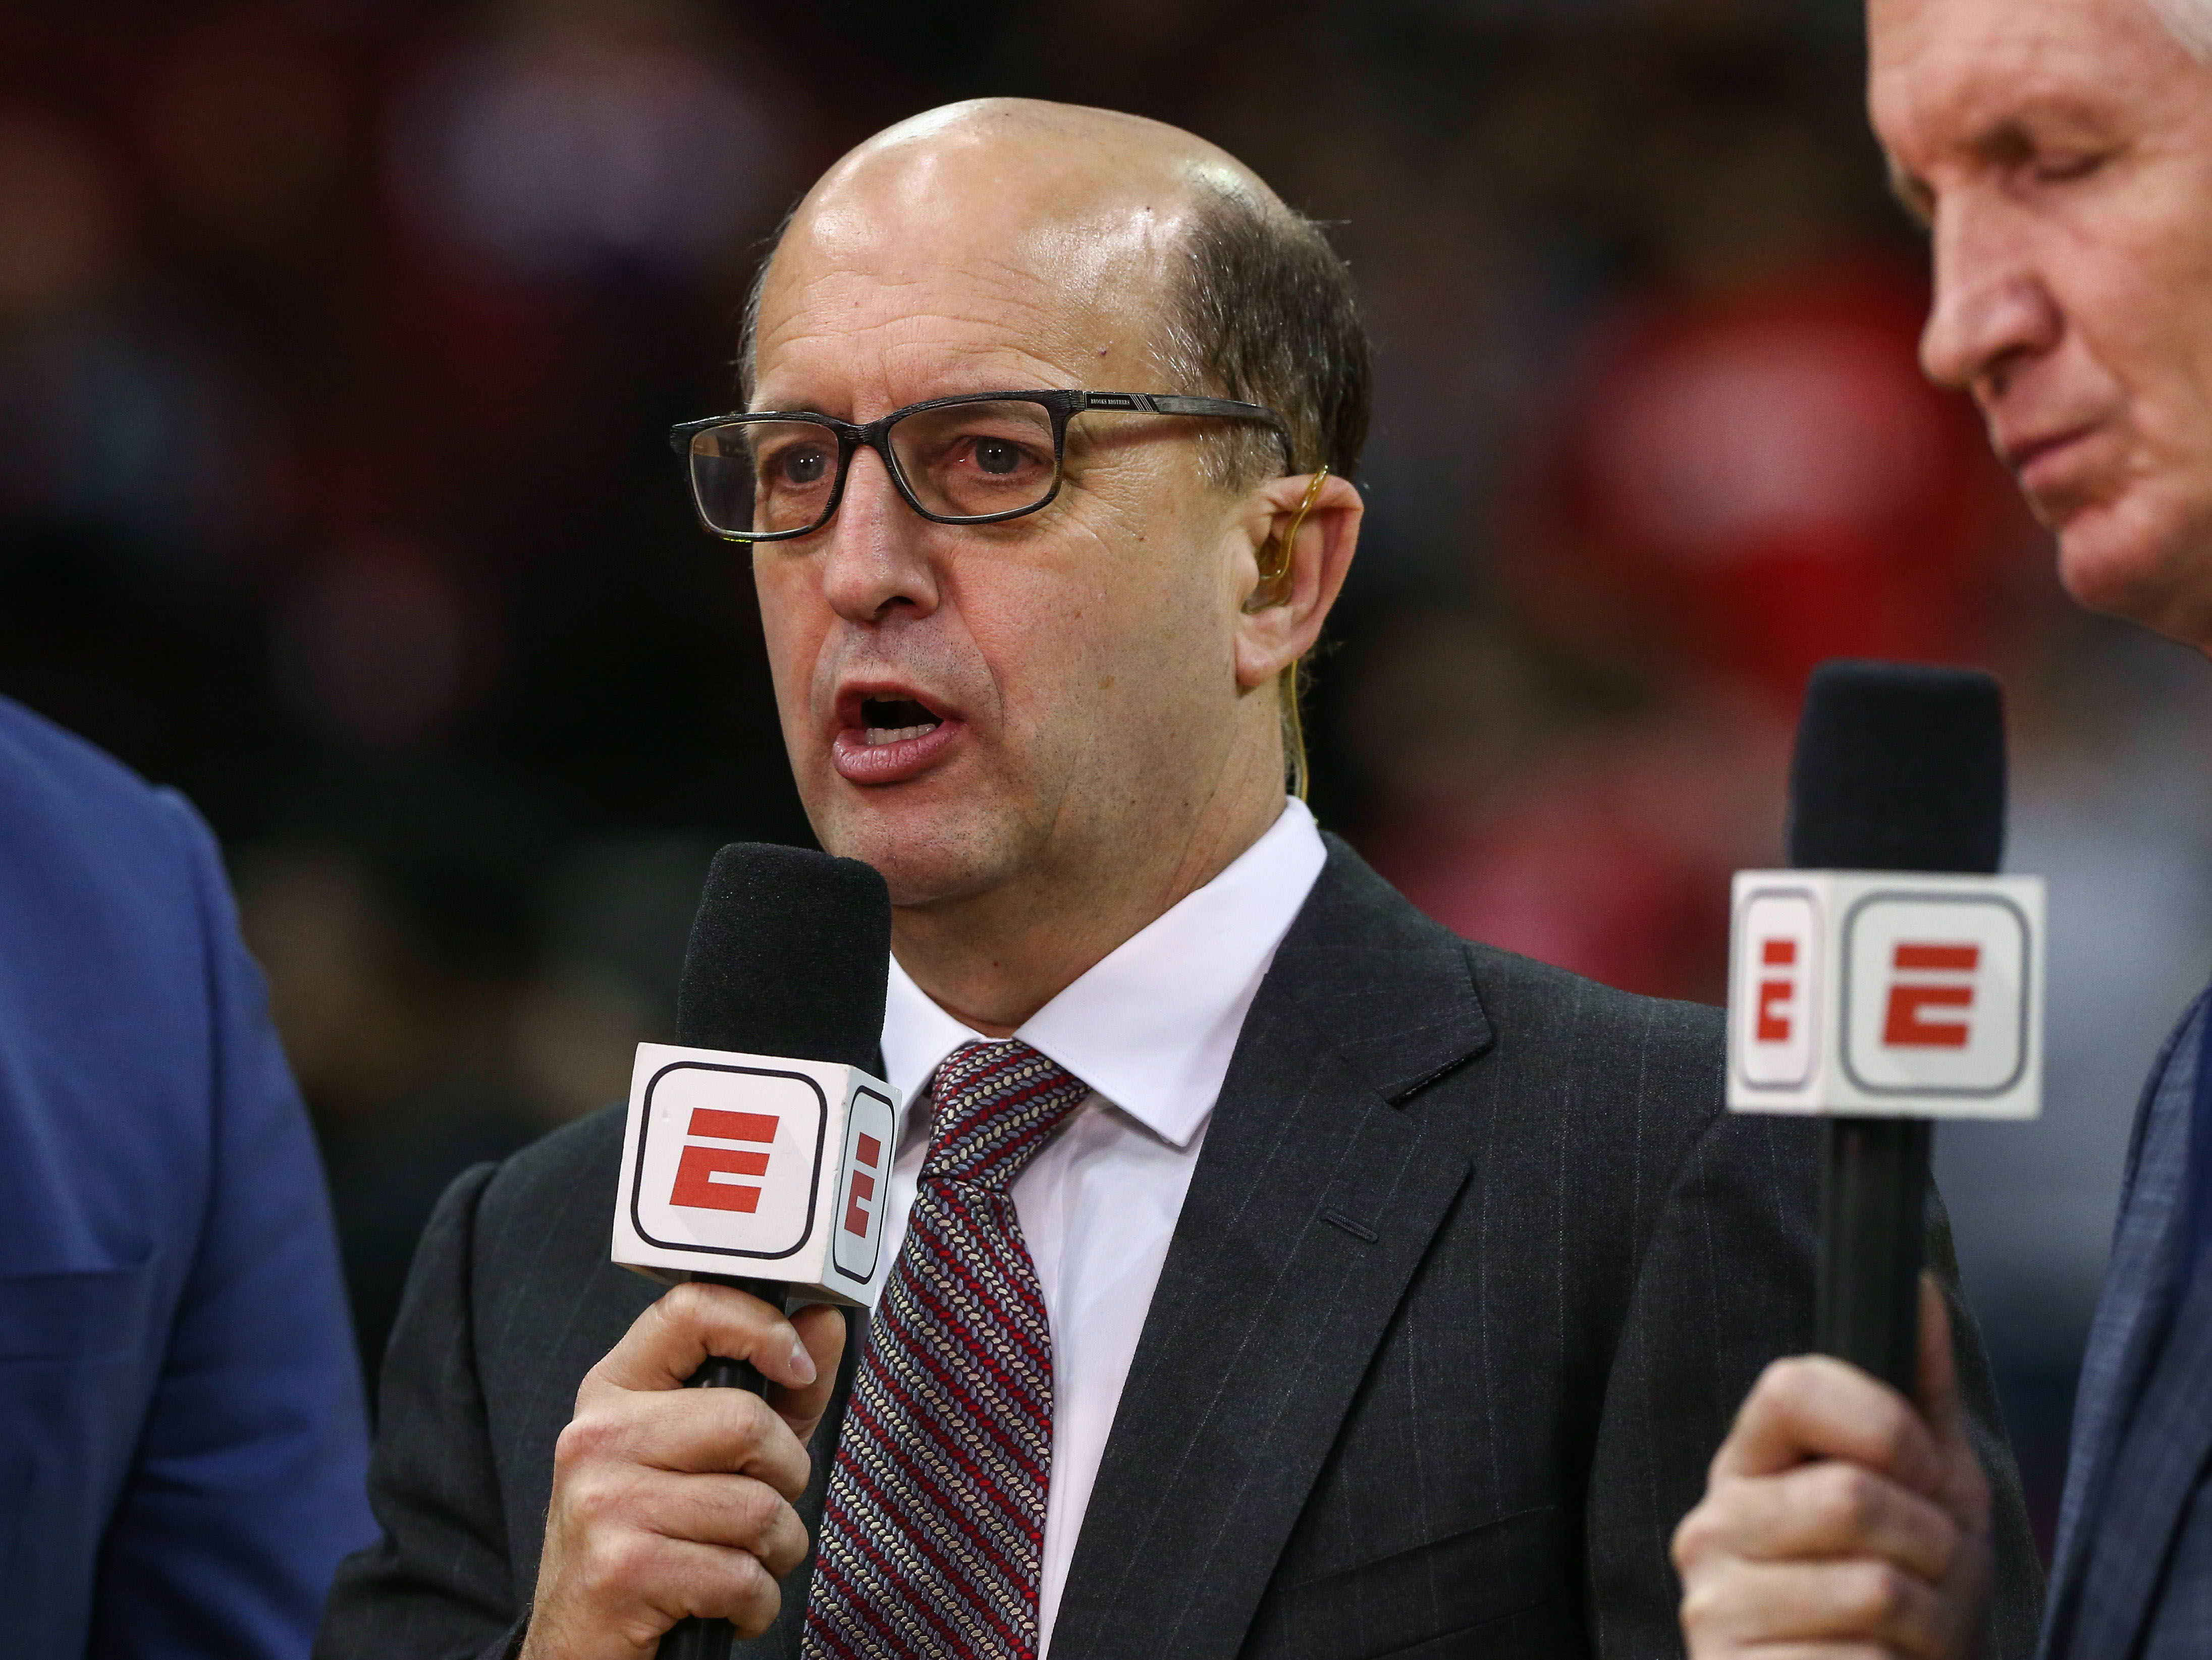 Knicks rumors indicate Jeff Van Gundy, Tom Thibodeau in mix for head coaching job